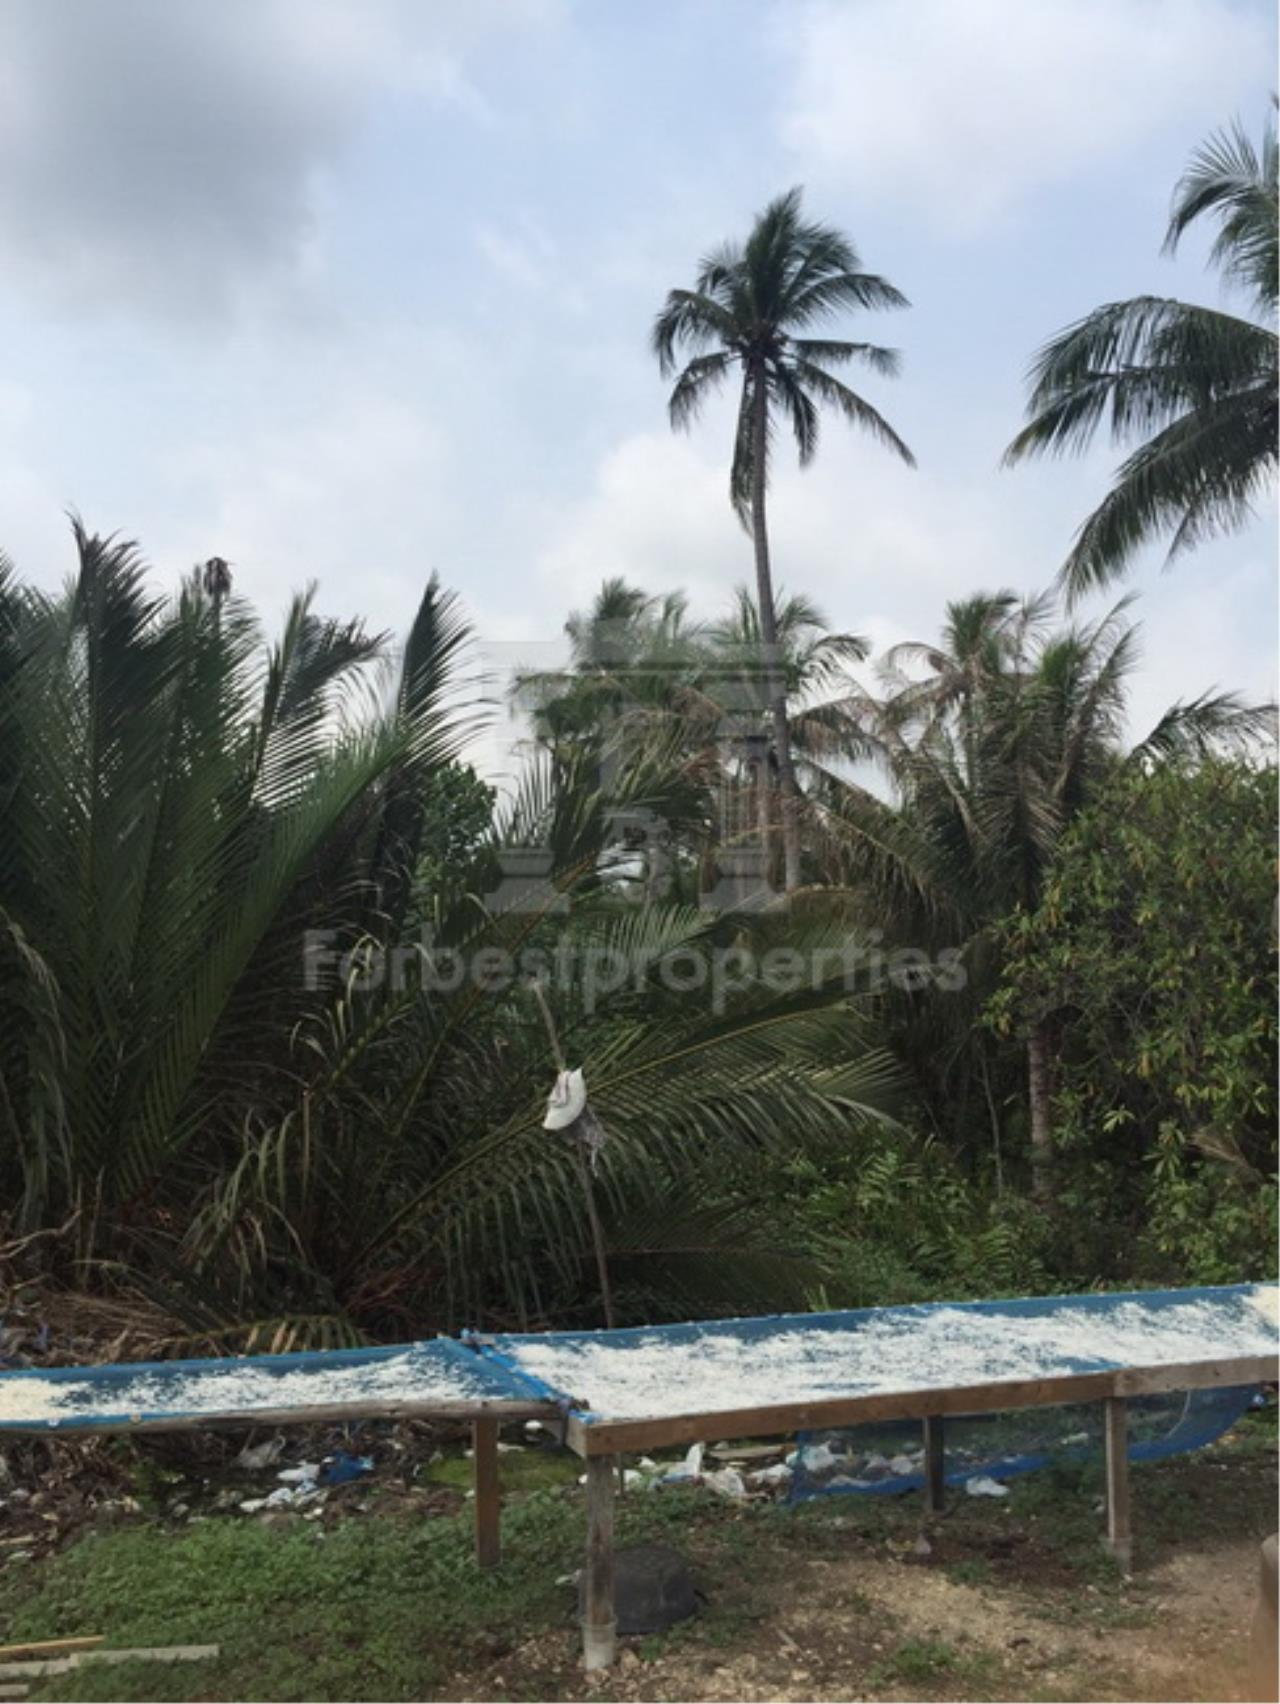 Forbest Properties Agency's 35941-Land For Sale, on Phetchahung Rd., land size 43 rai 7